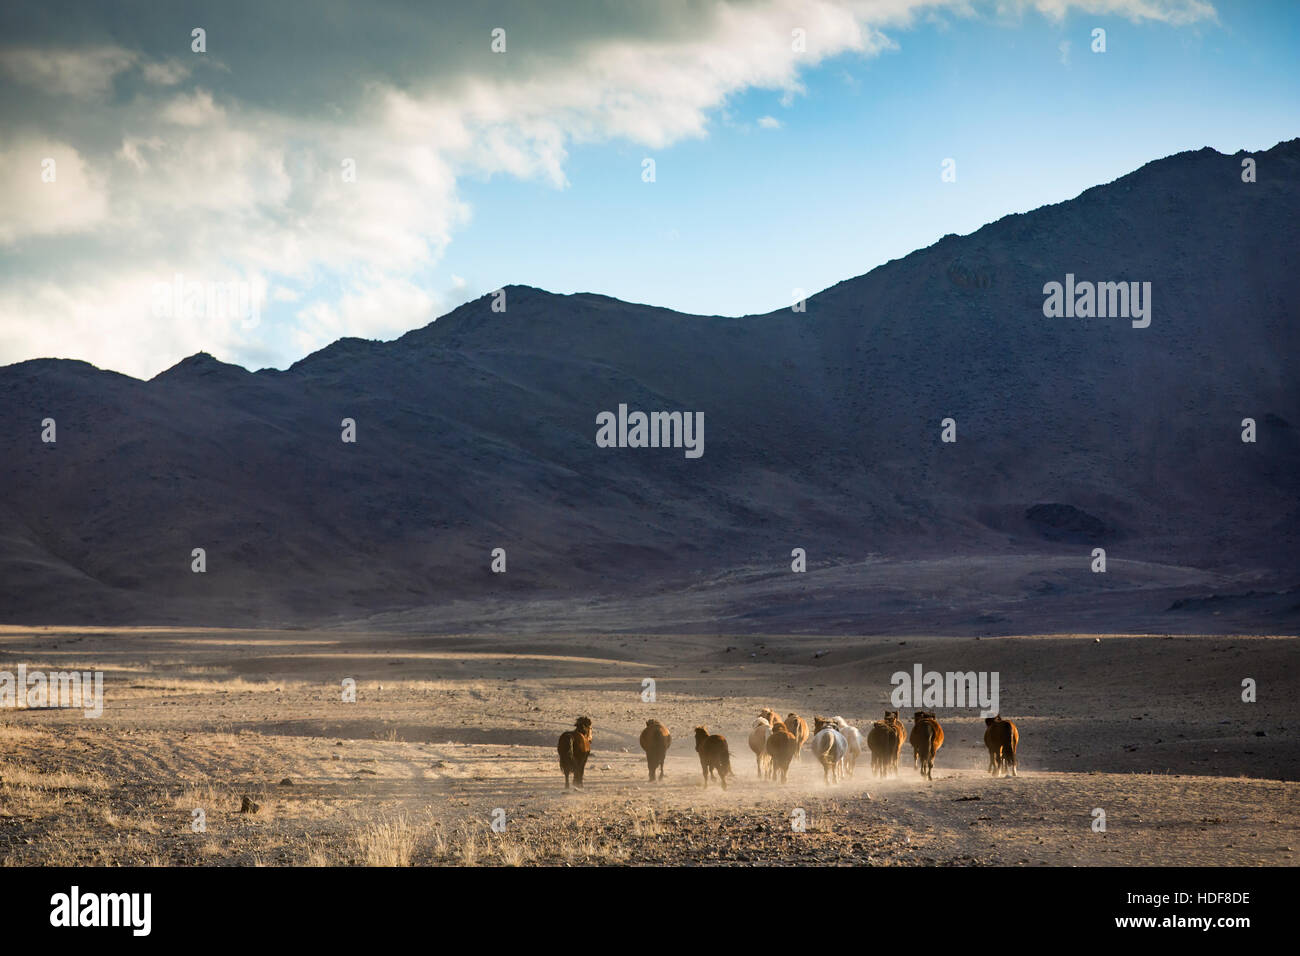 wild mongolian horses running in a steppe - Stock Image